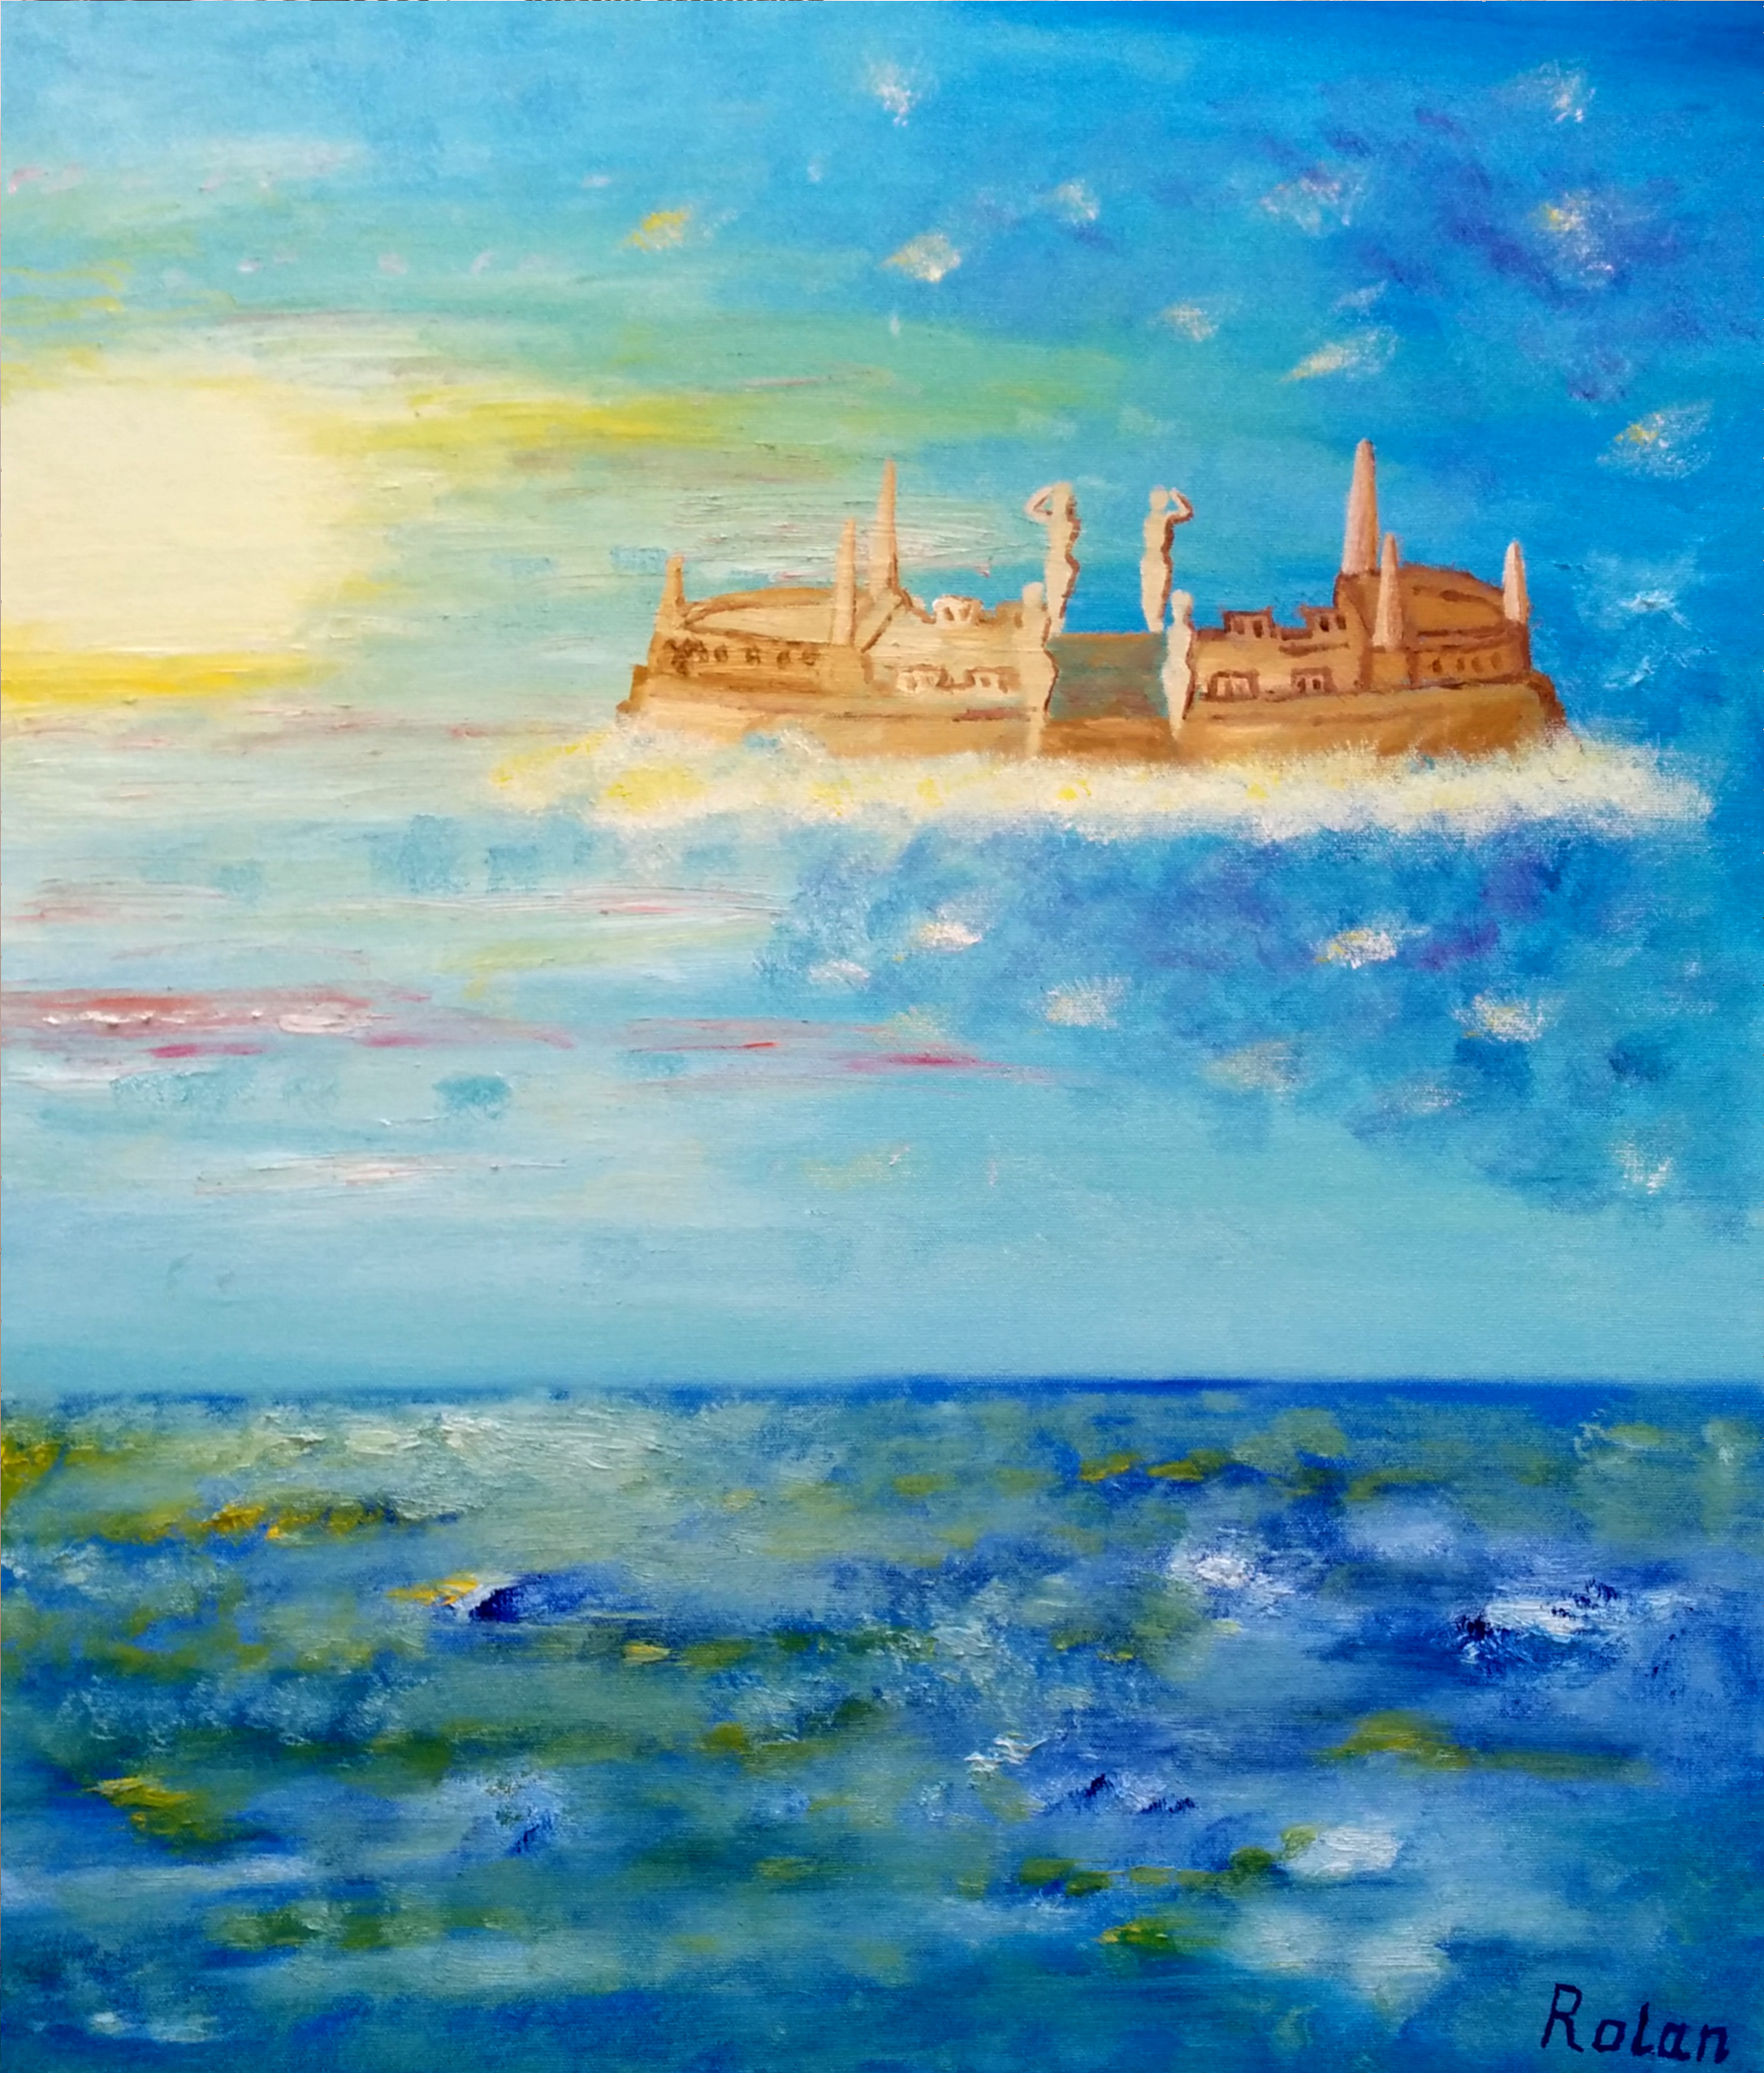 Barge of Vizcaya in the Sky artwork by Rolan Letalov - art listed for sale on Artplode